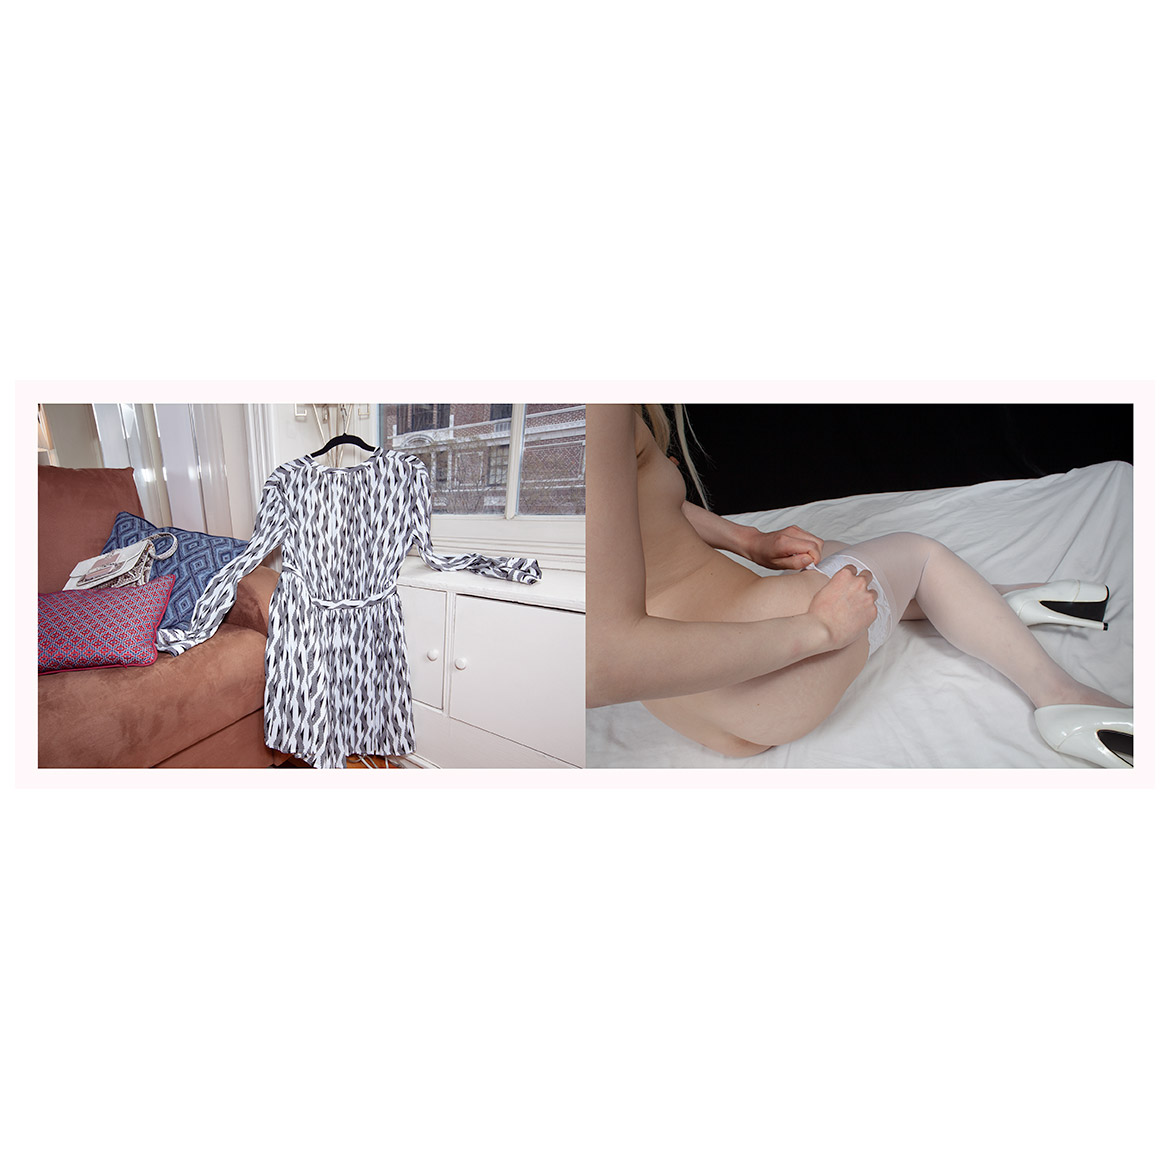 FILETI_COMPOSITE_0887_0887_INSTA_PRINTED